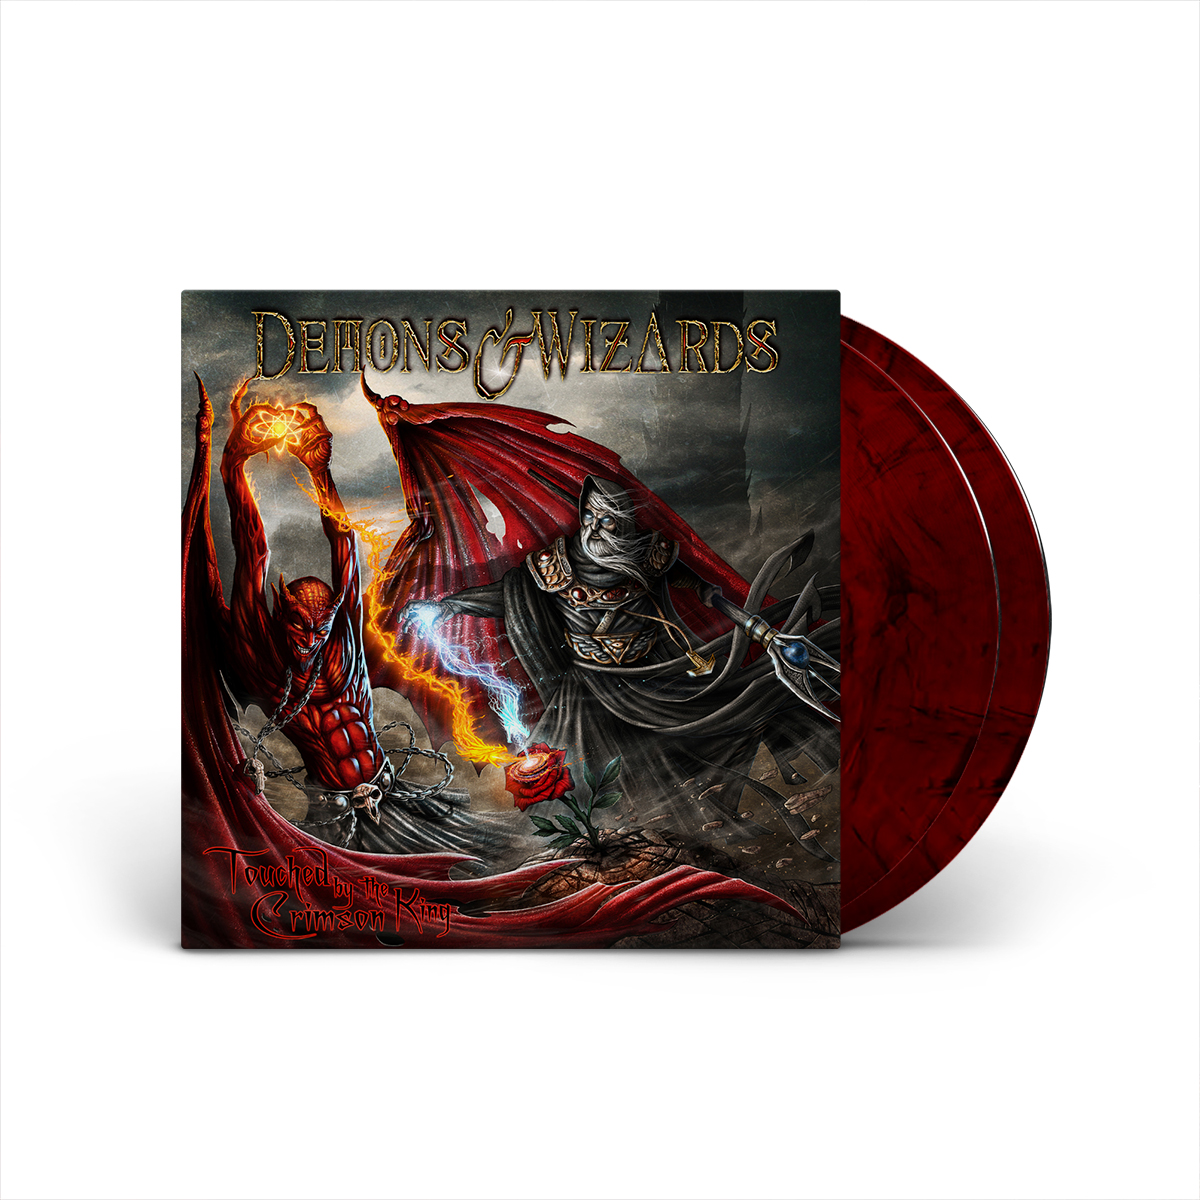 Demons & Wizards - Touched By The Crimson King (Remasters 2019) Red Smoke 2 LP